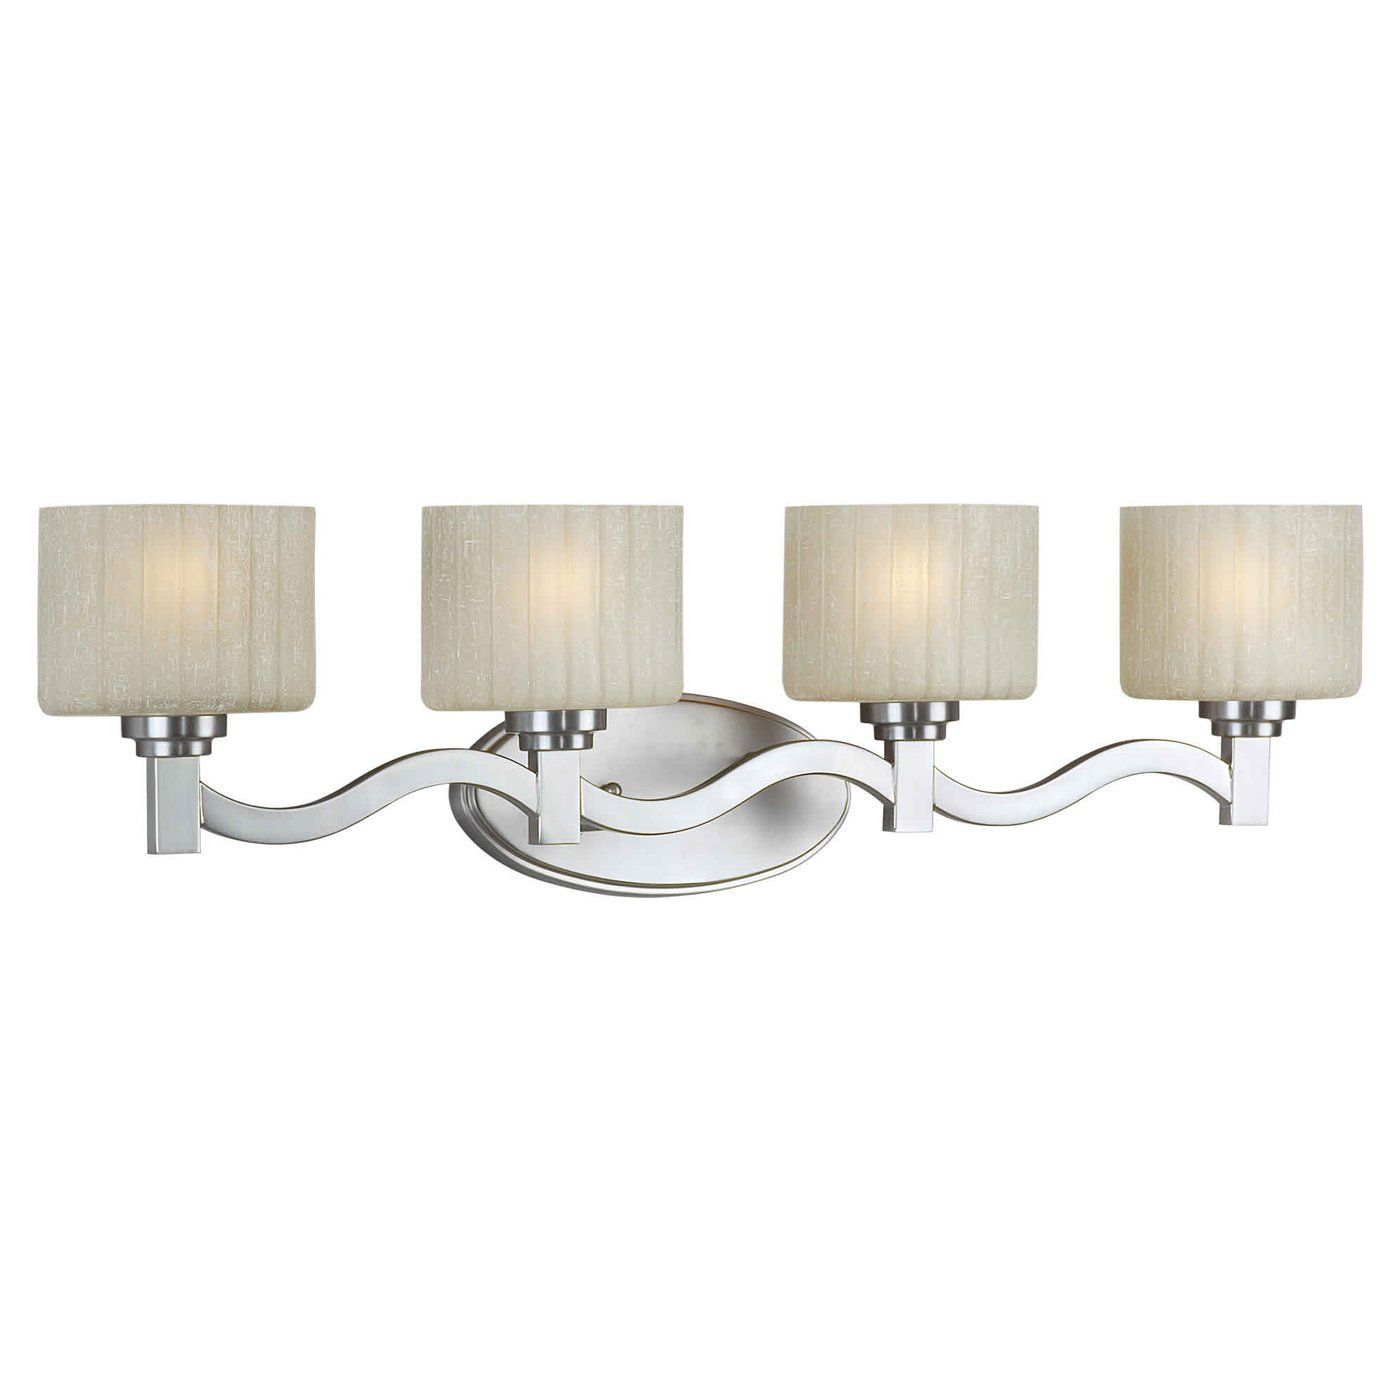 Bathroom Lighting Discount Prices shop forte lighting 5388-04-55 4 light bathroom light at the mine